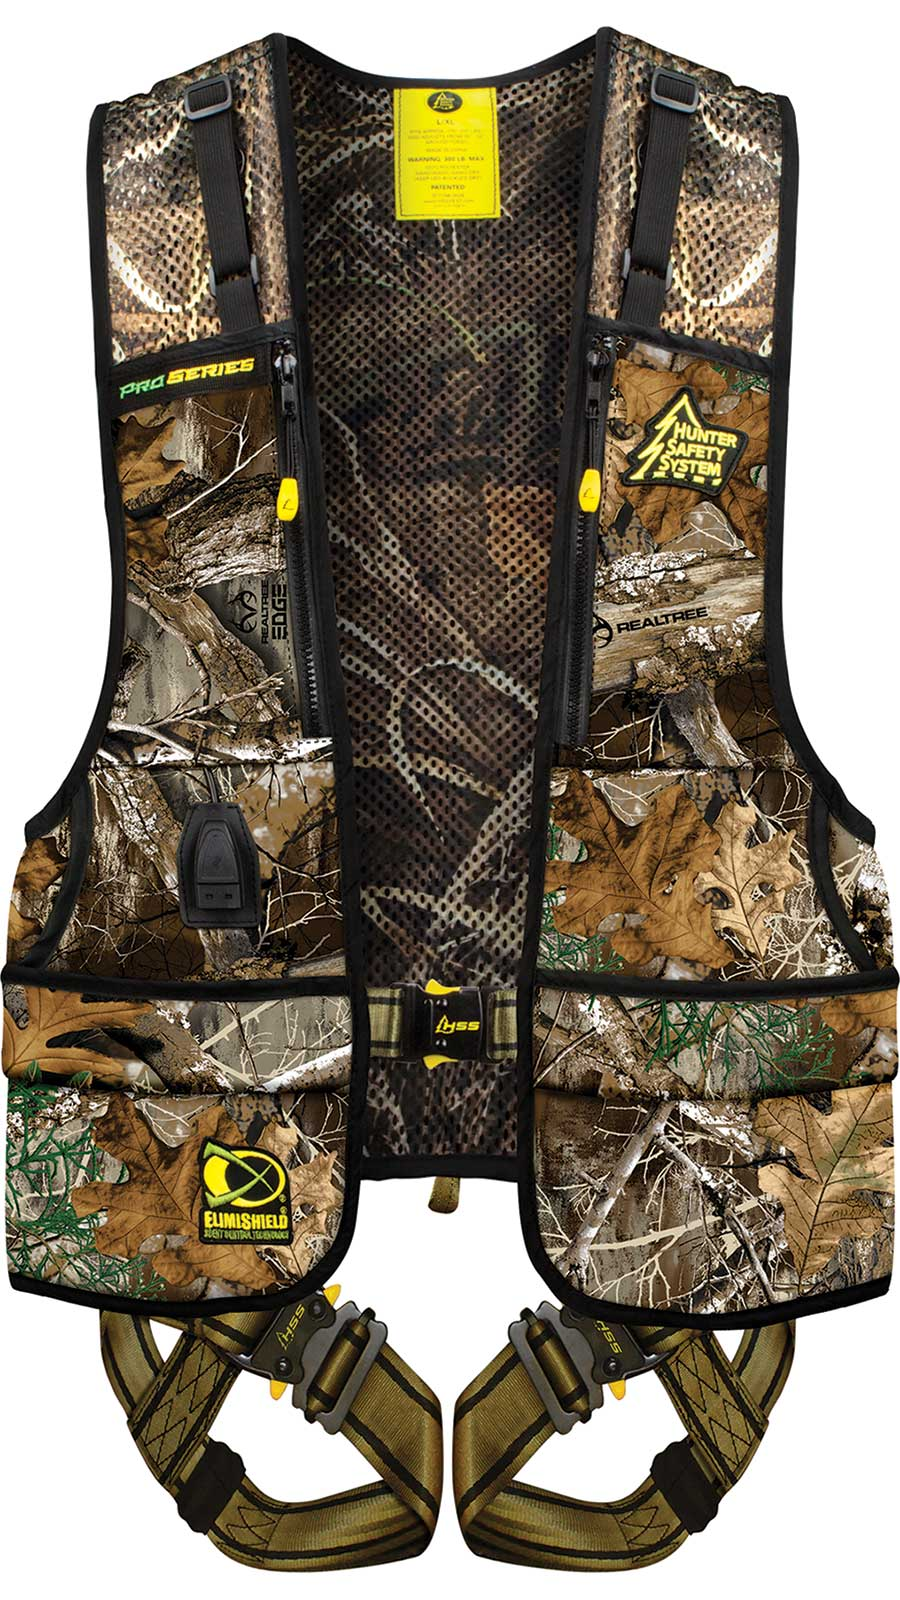 Hunter Safety System Pro Series  <br>  with Elimishield Realtree 2X-Large/3X-Large